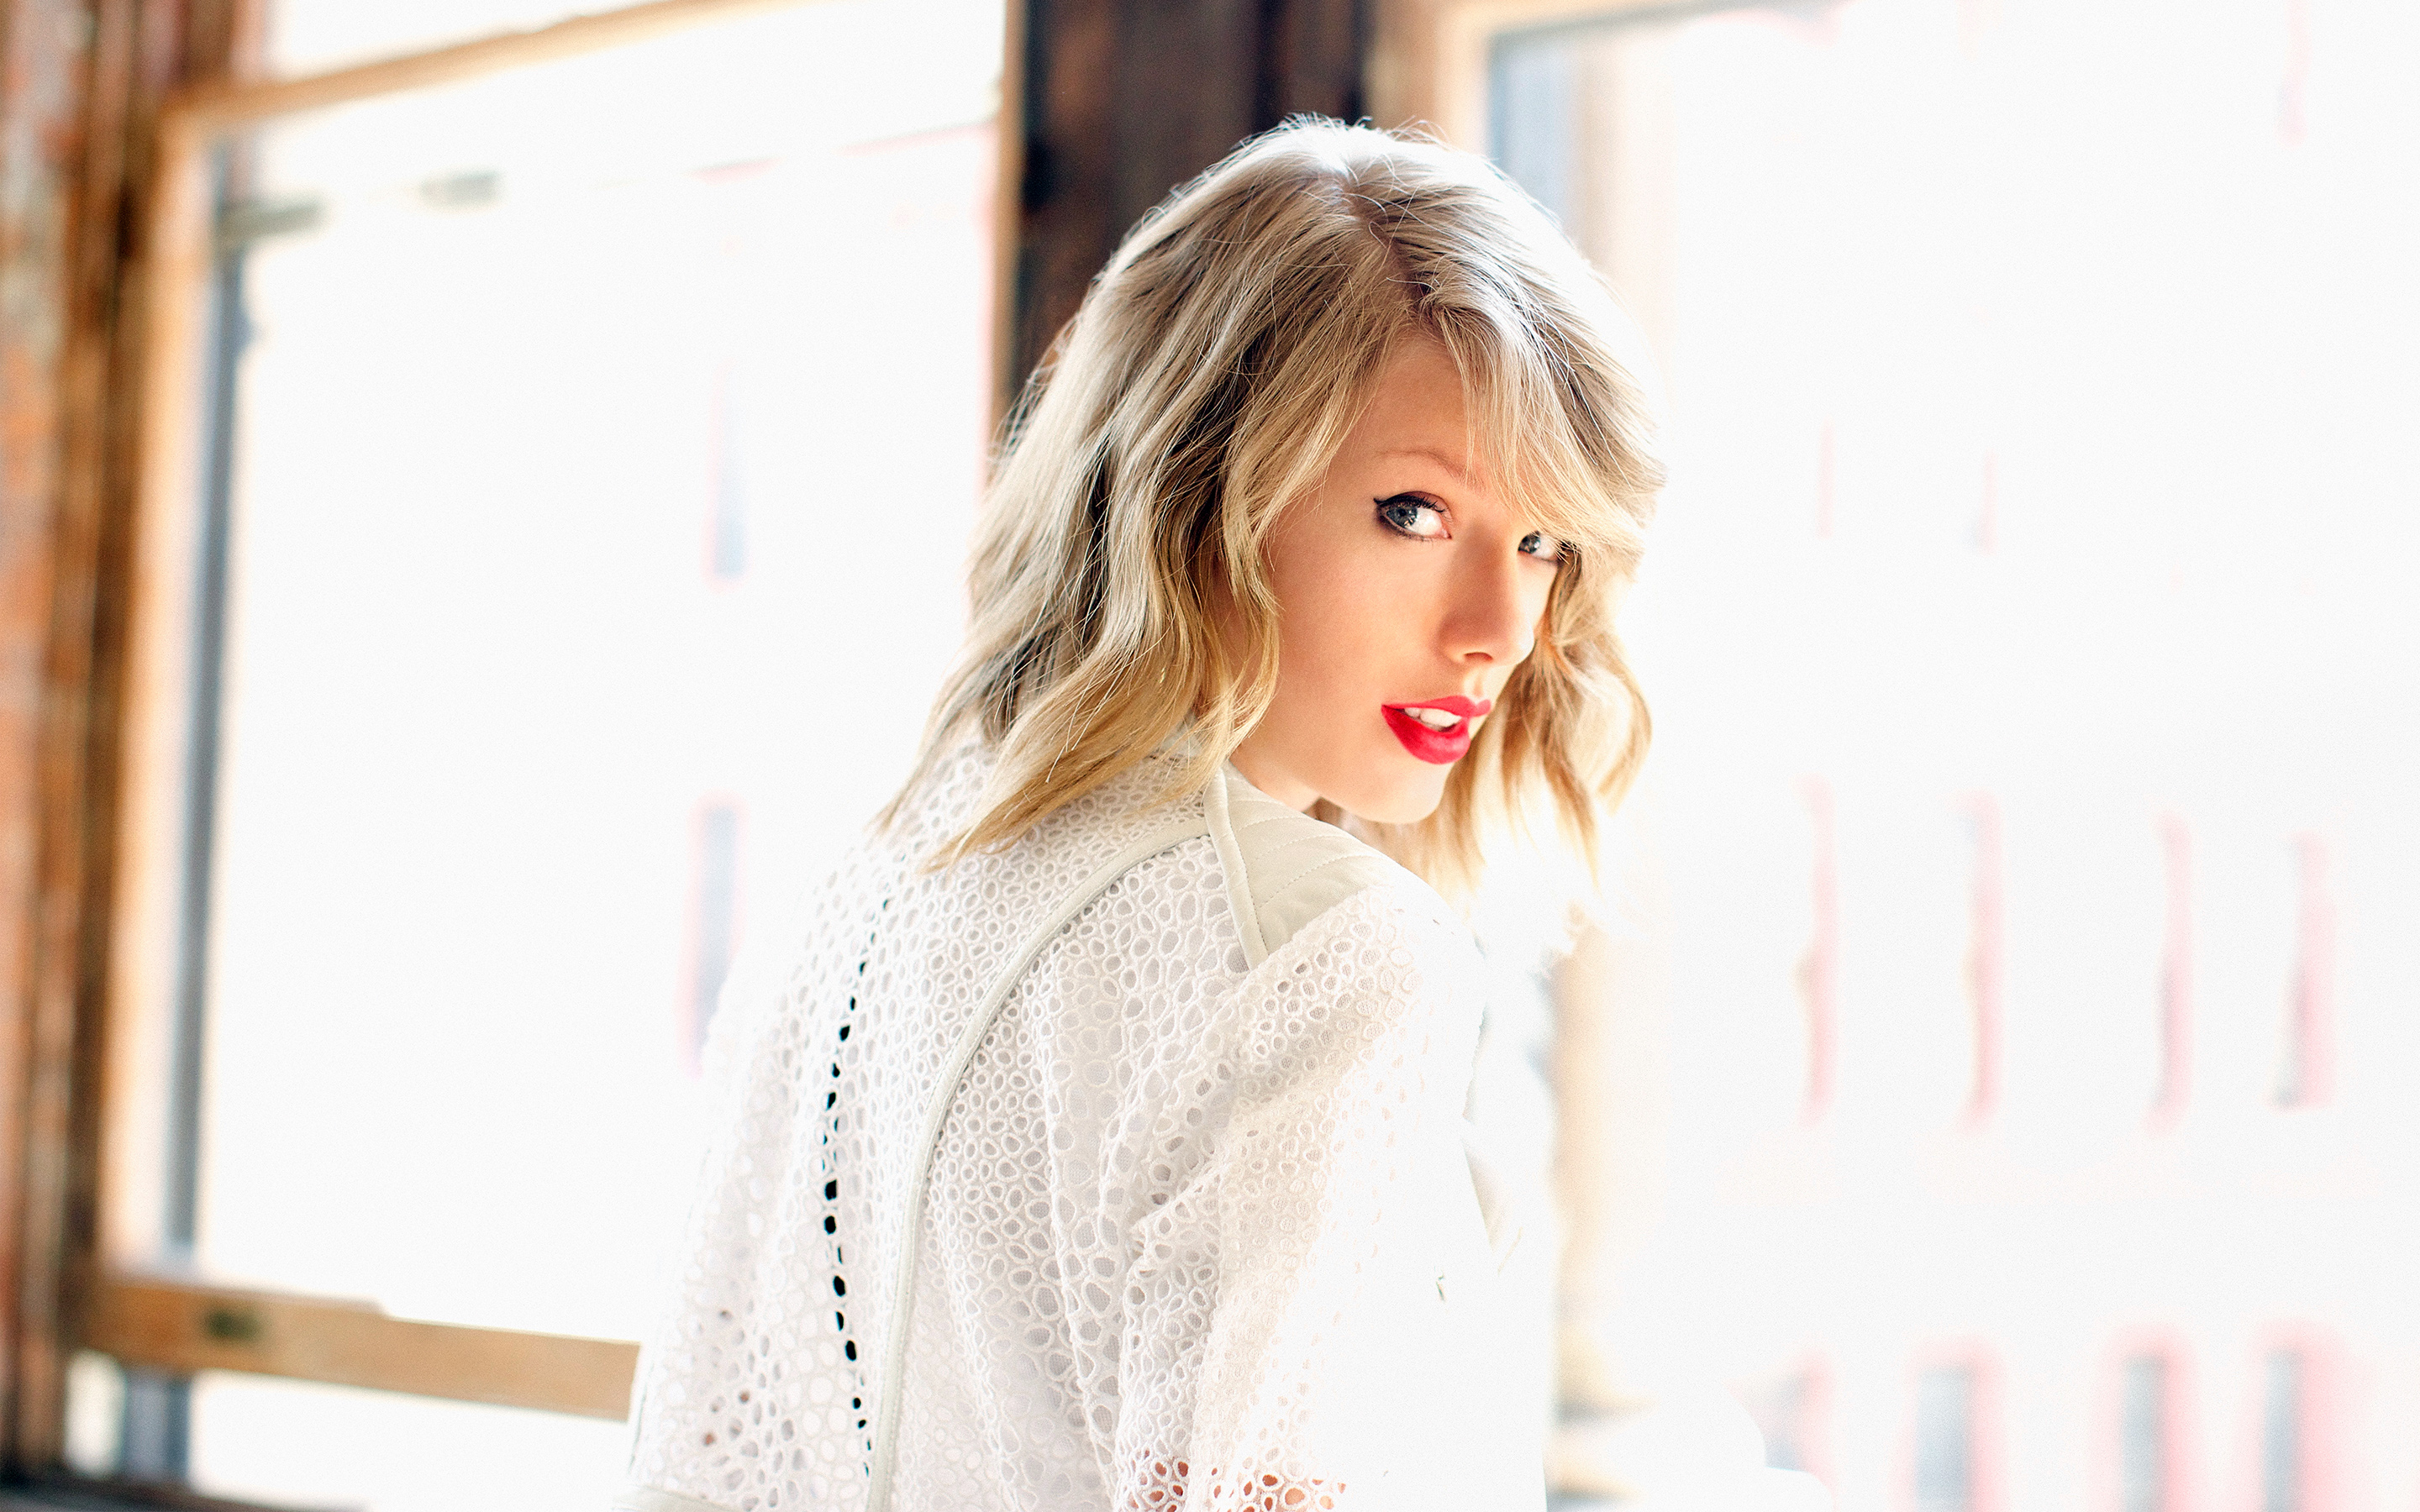 Taylor Swift Wallpapers 2016 52